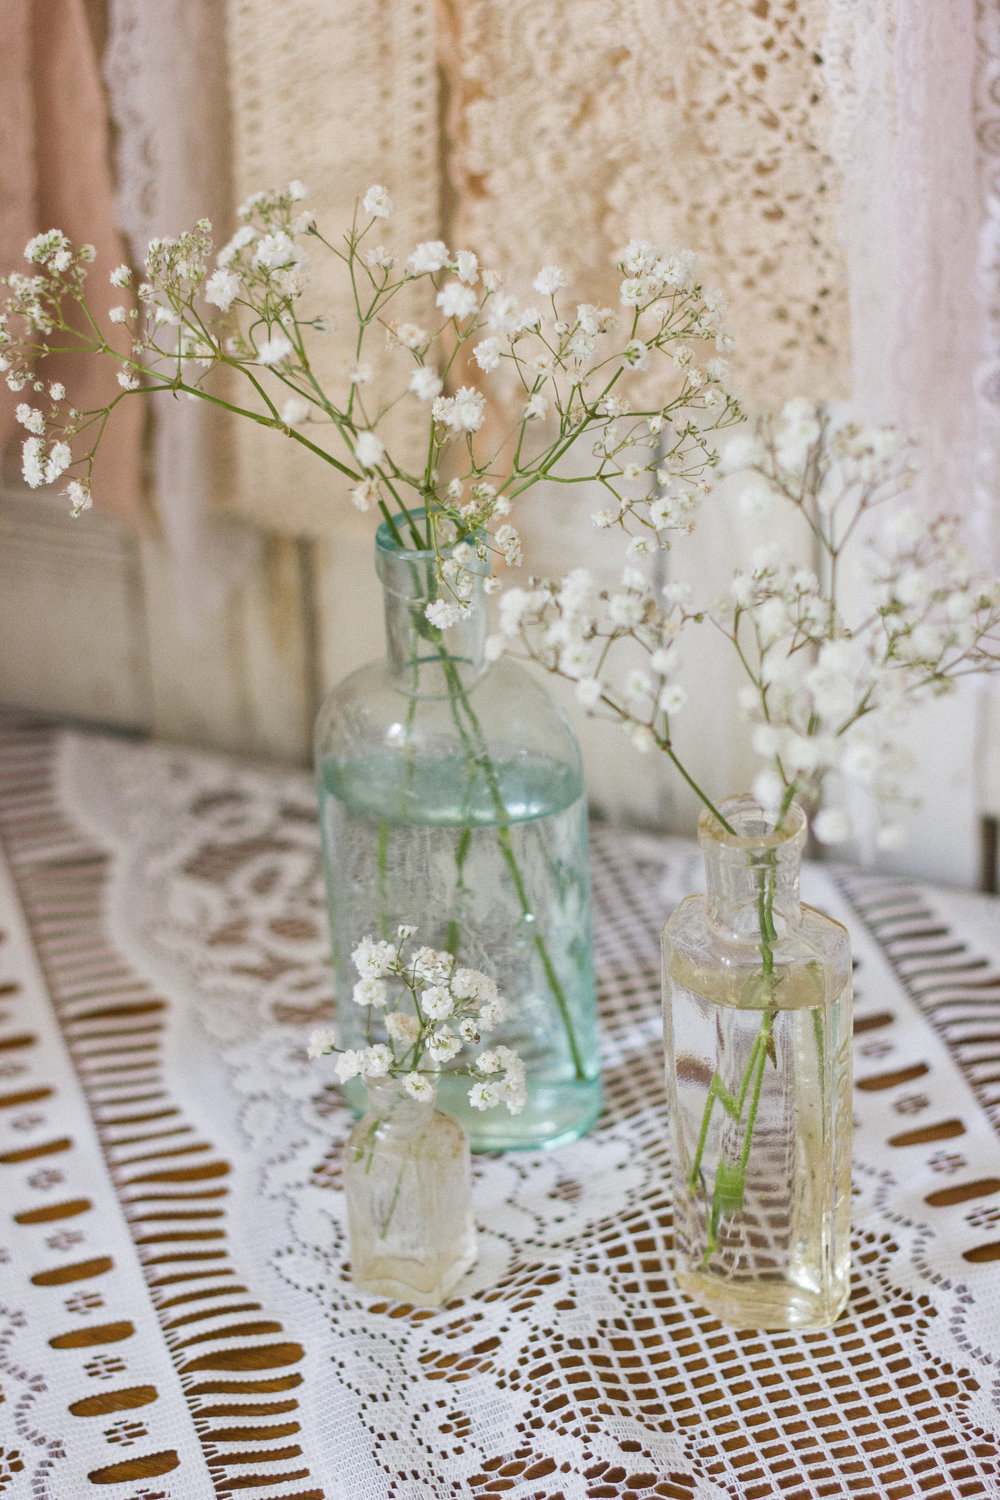 Dainty little medicine bottles with gyp, such a pretty way to add detail to your day.